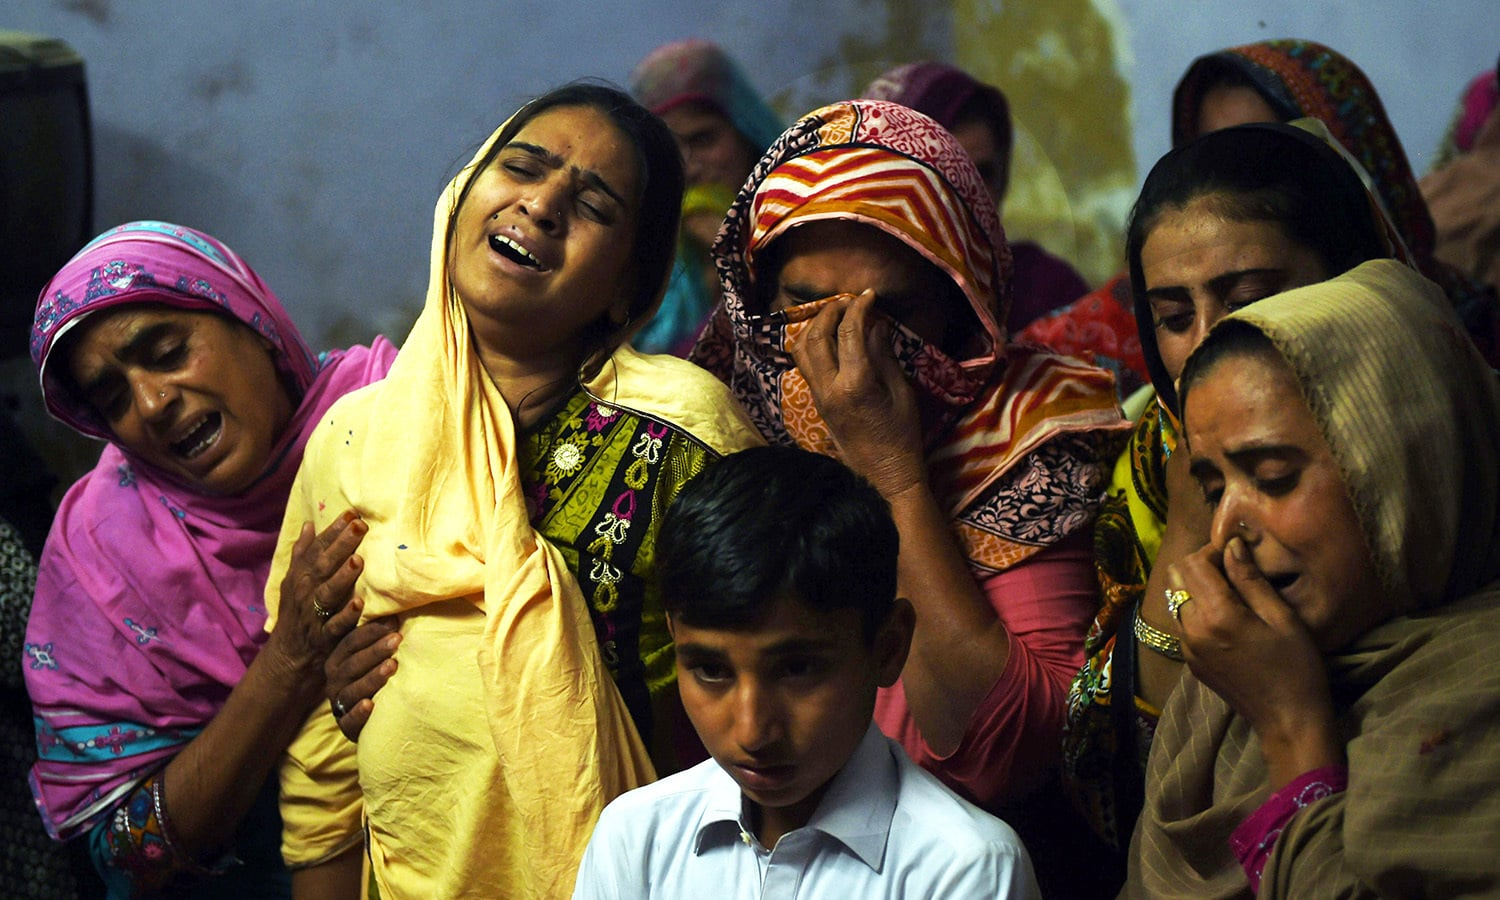 A Pakistani mother mourns along with others over the coffin of her 13-year-old blast victim Zeeshan during his funeral in the town of Sehwan.─AFP